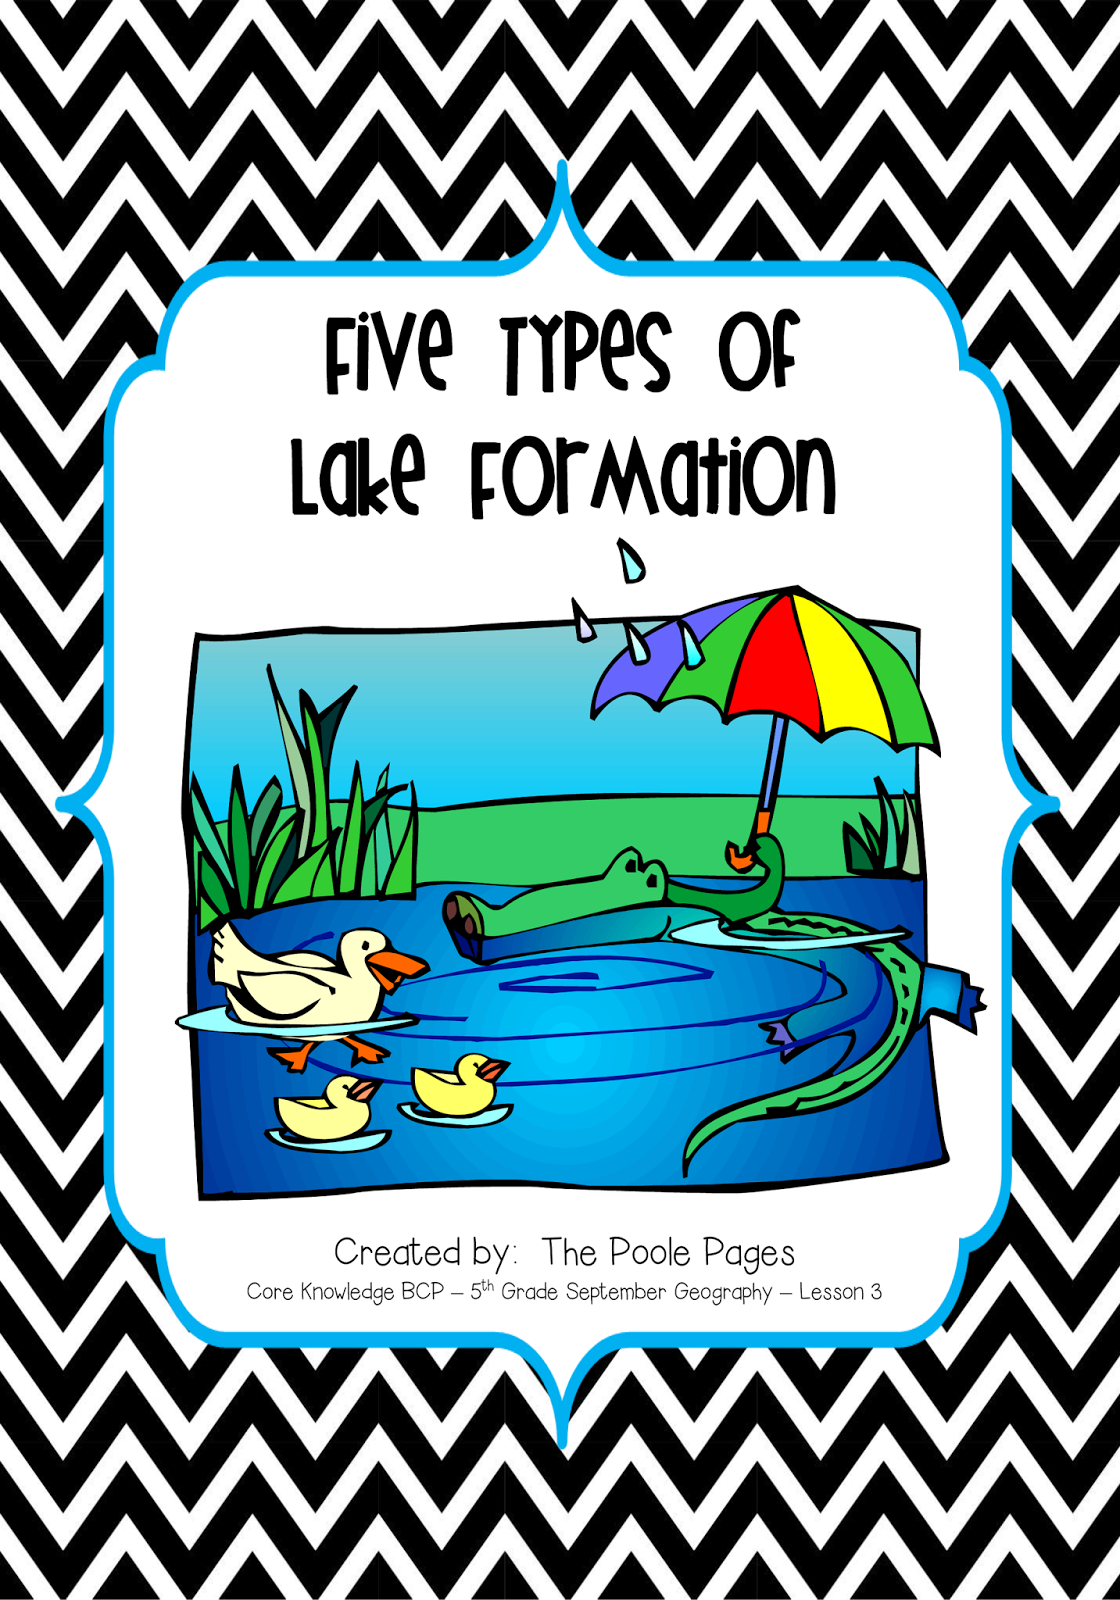 http://www.teacherspayteachers.com/Product/Five-Types-of-Lake-Formation-1335349